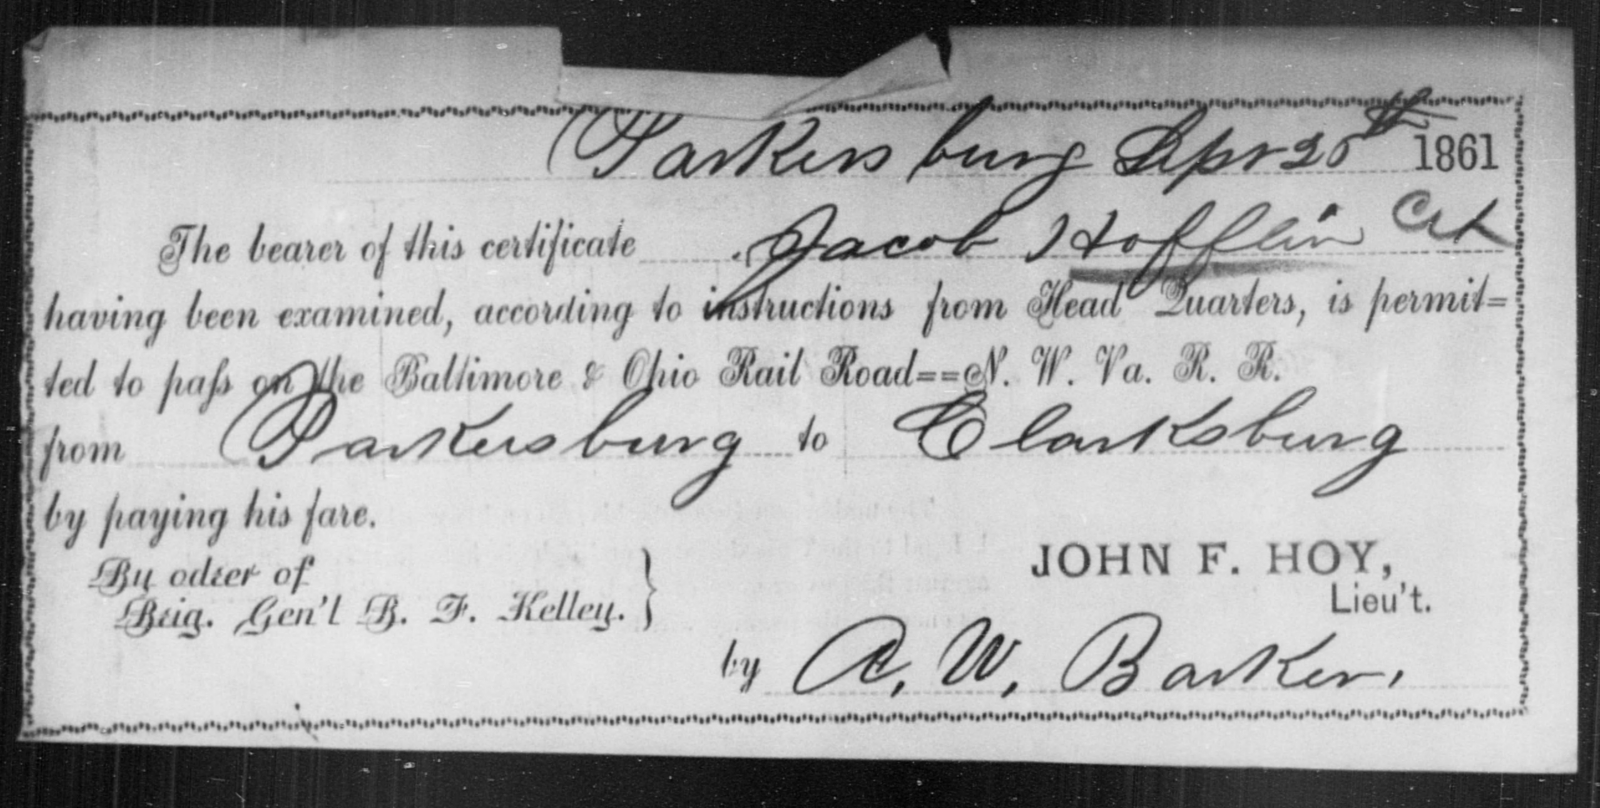 Hoffin, Jacob - State: [Blank] - Year: 1861